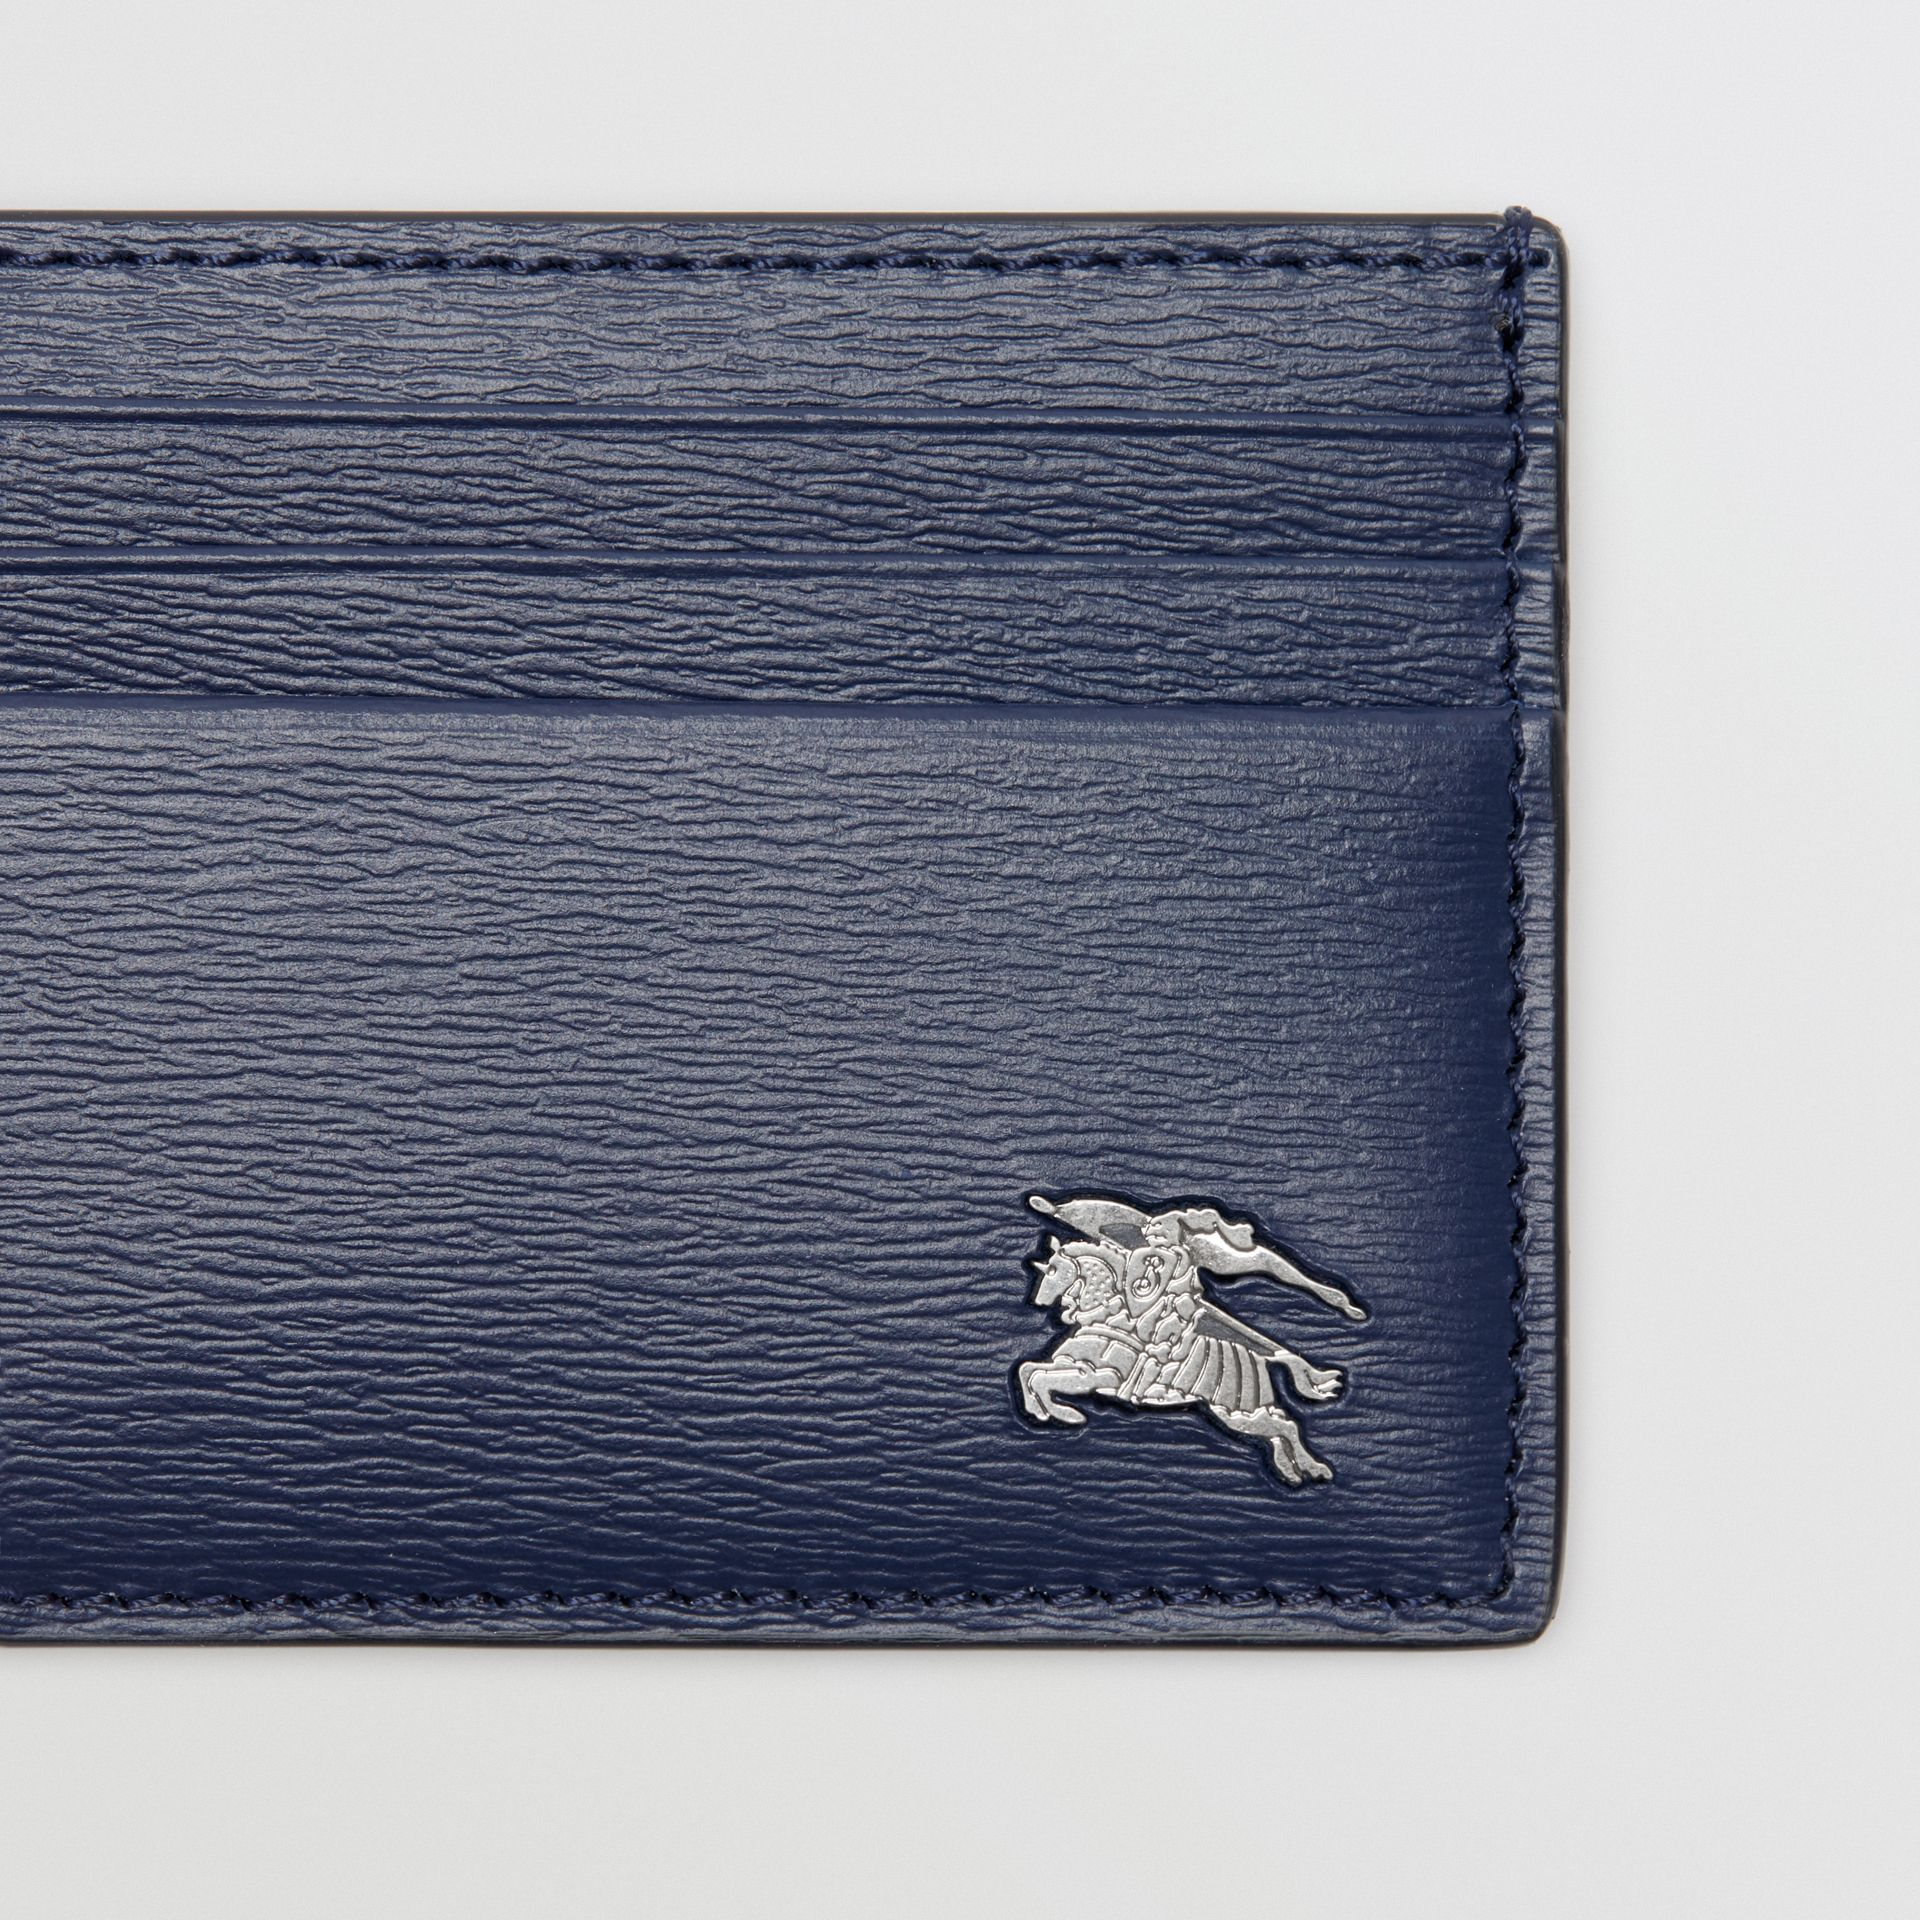 London Leather Money Clip Card Case in Navy - Men | Burberry - gallery image 1